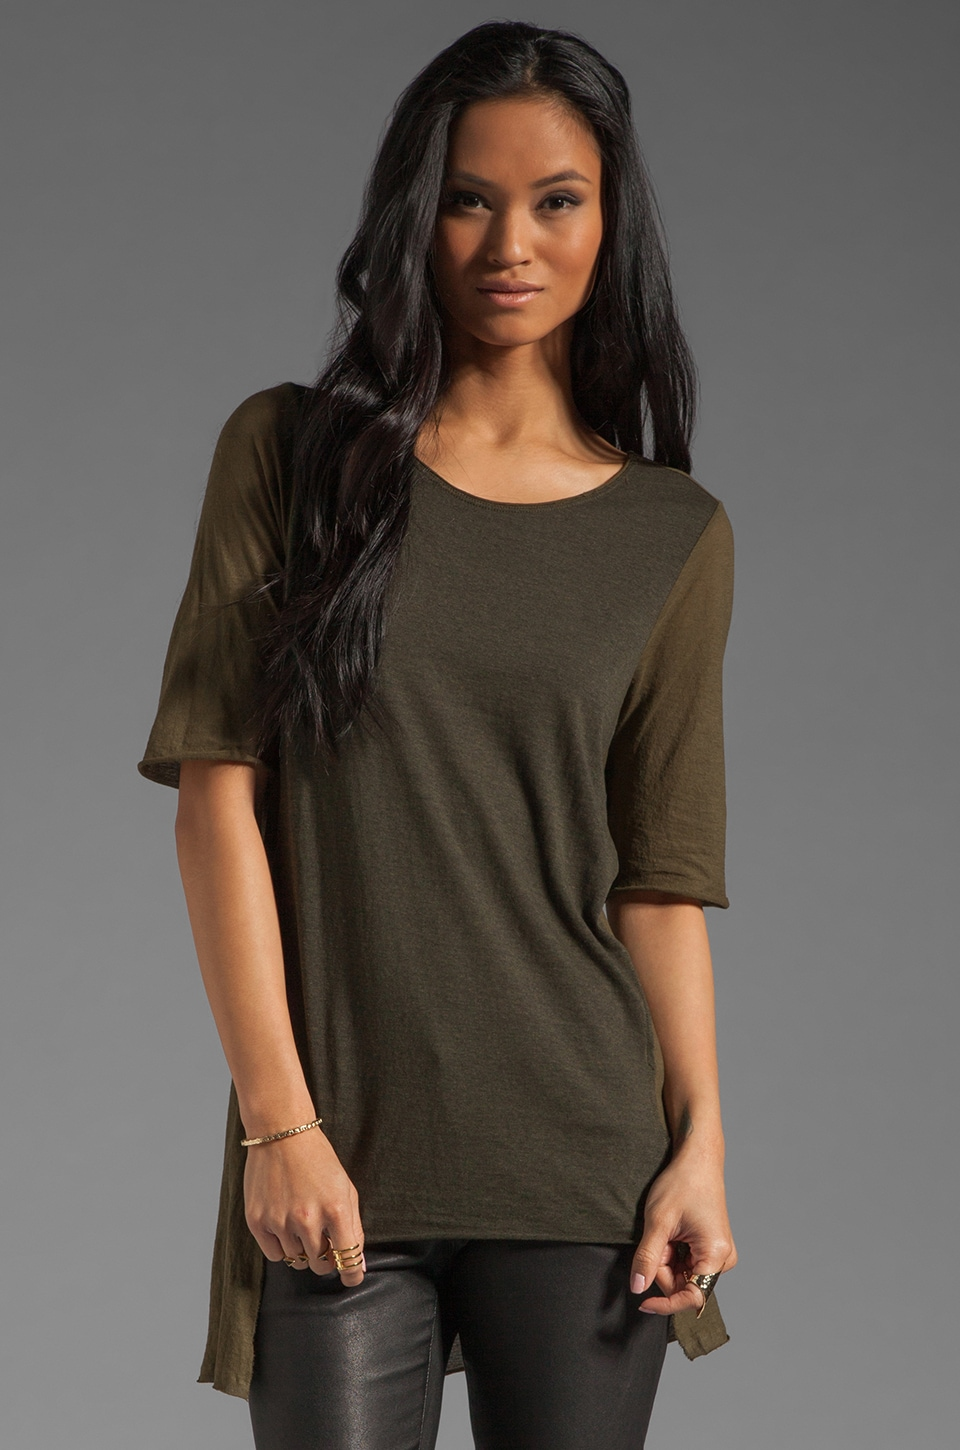 fLuXuS Zoey Top in Army